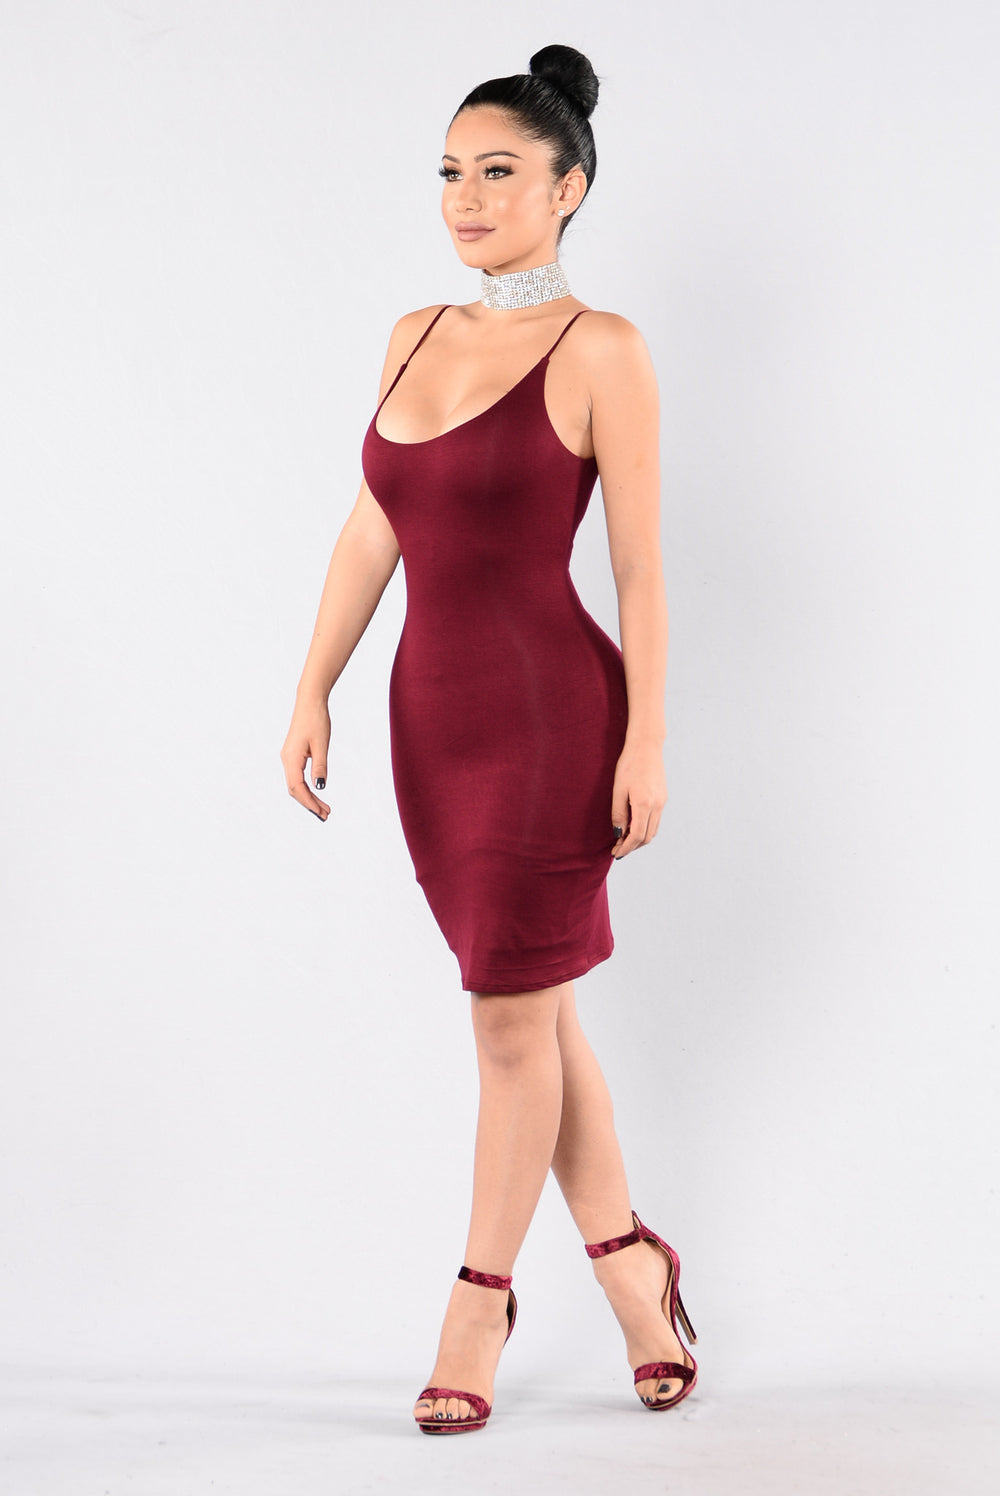 Strap Up Dress - Burgundy